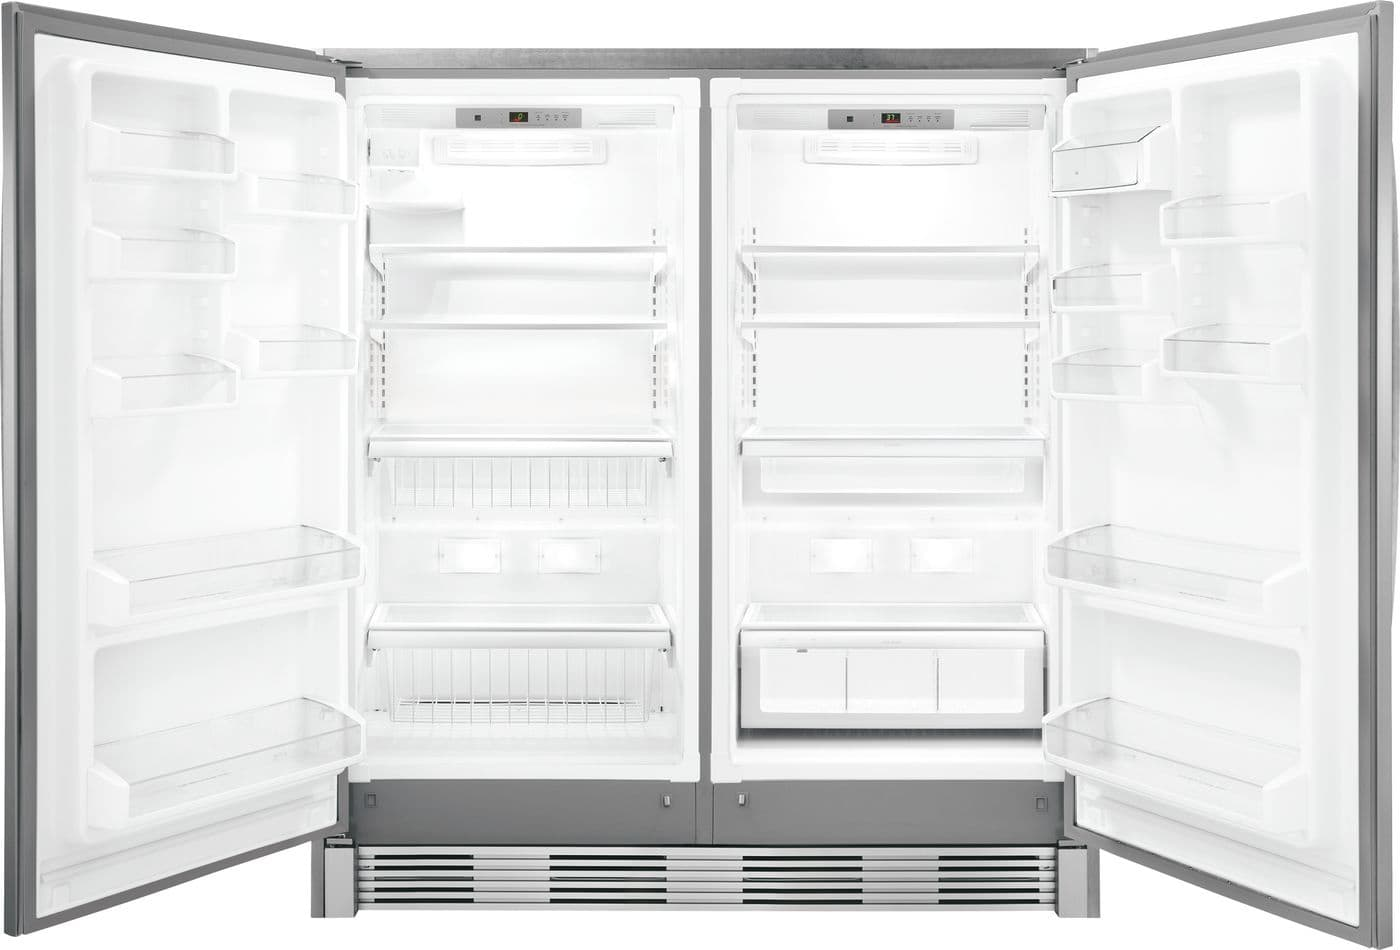 Model: FGRU19F6QF | Frigidaire 19 Cu. Ft. Single-Door Refrigerator